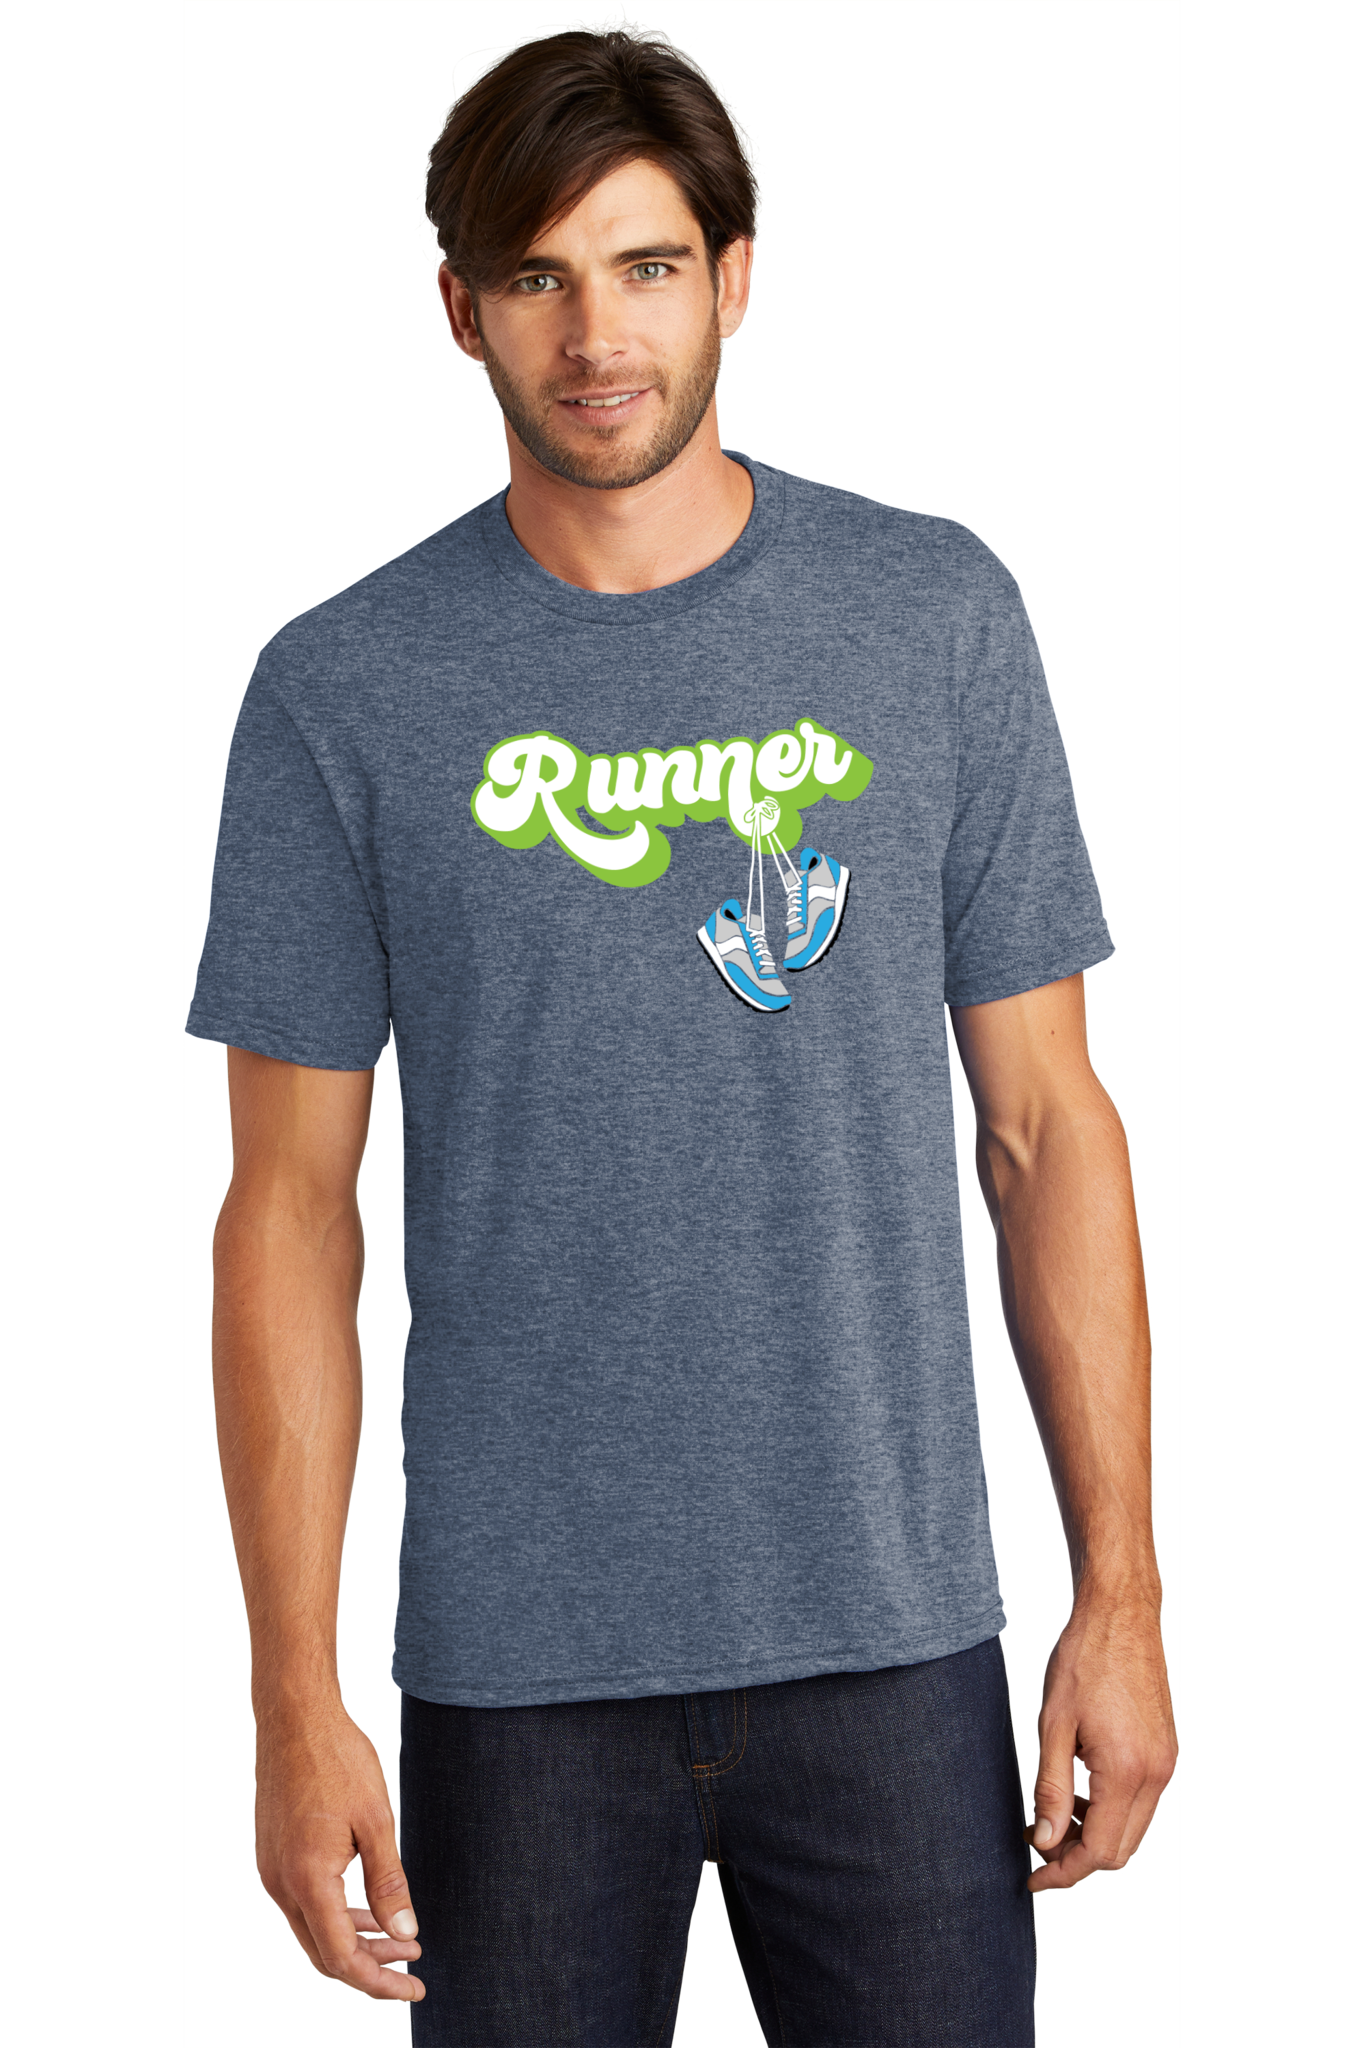 Mad Dash Creations Retro Runner Tee - Men